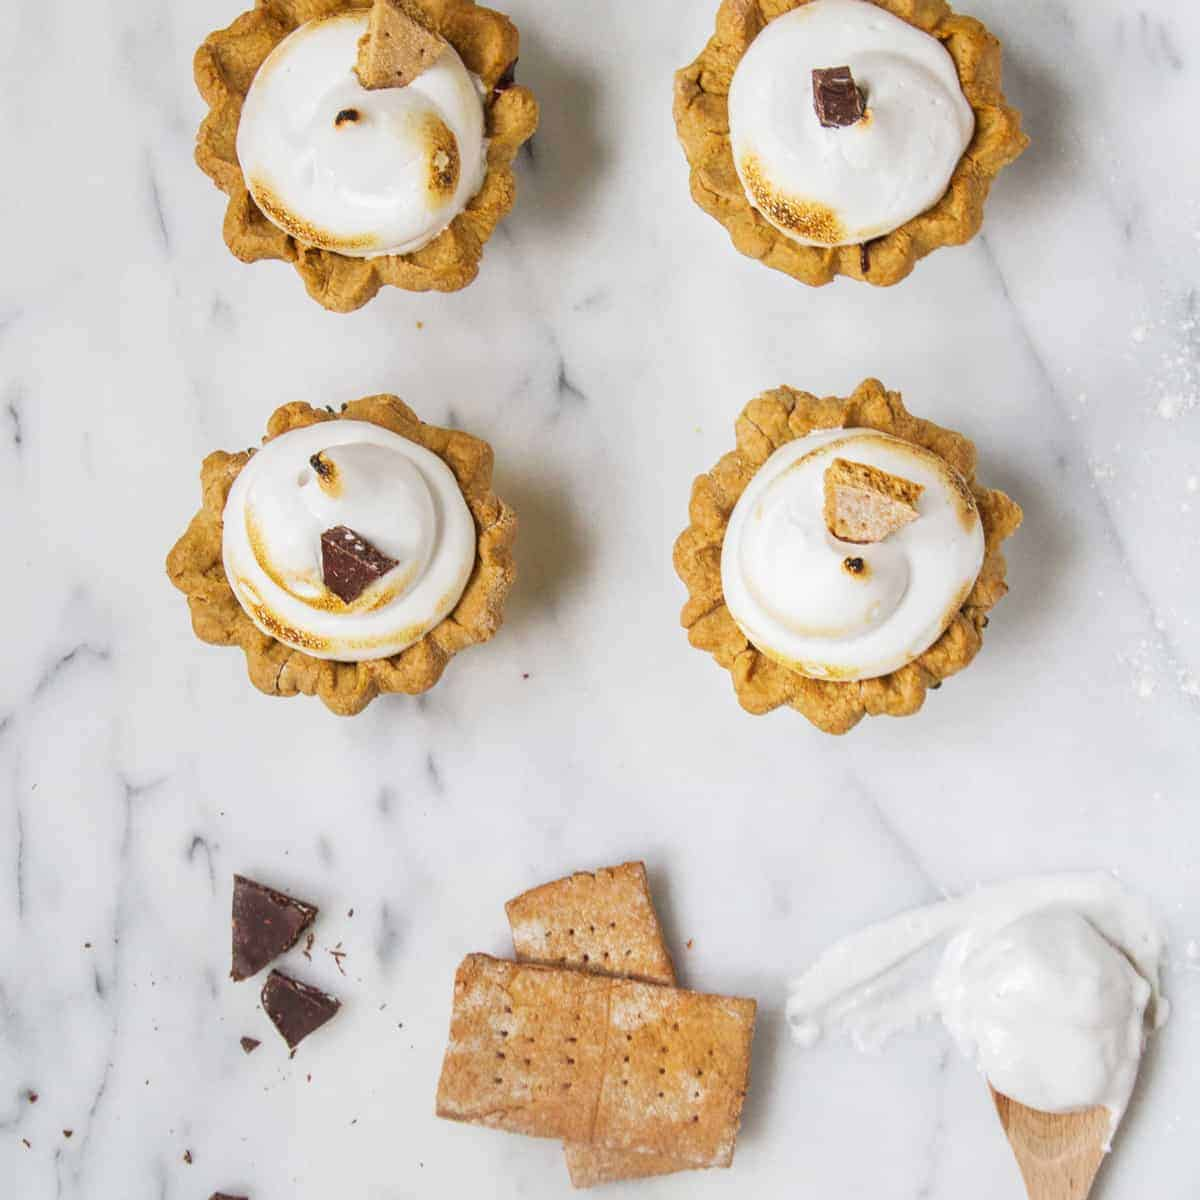 Small s'mores pies on marble slab